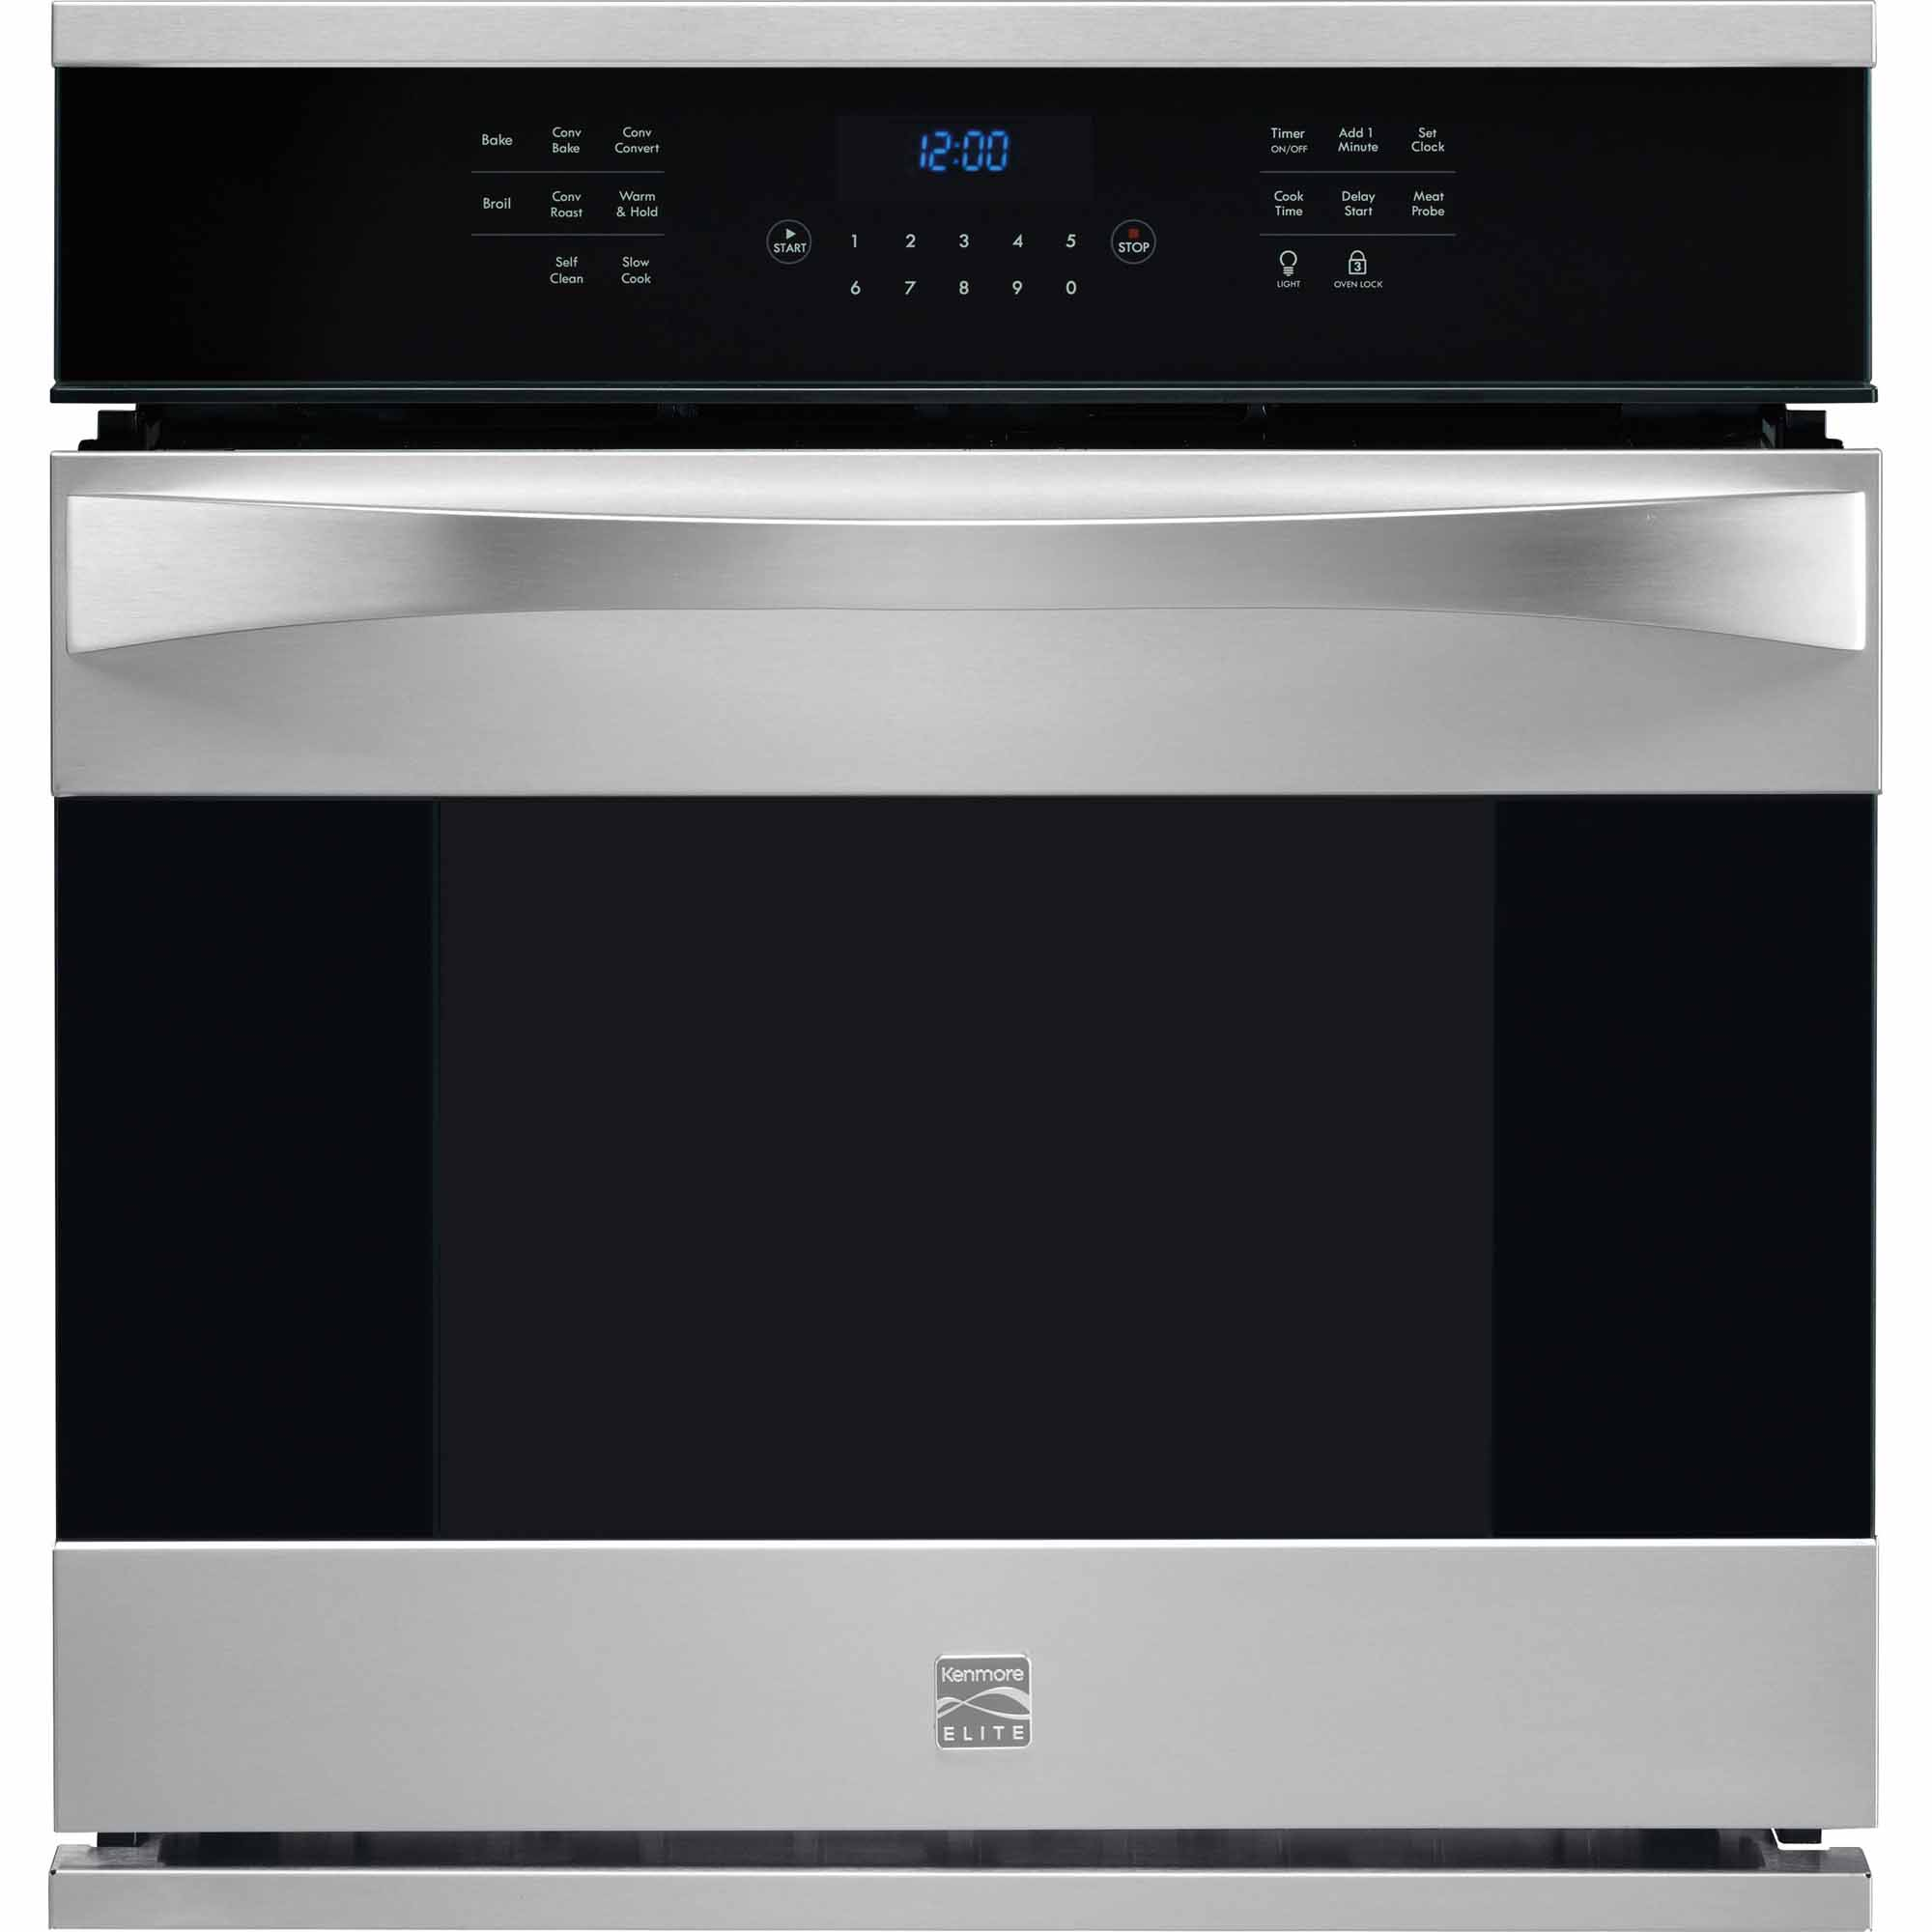 Kenmore Elite 48343 27 Electric Single Wall Oven - Stainless Steel 48343